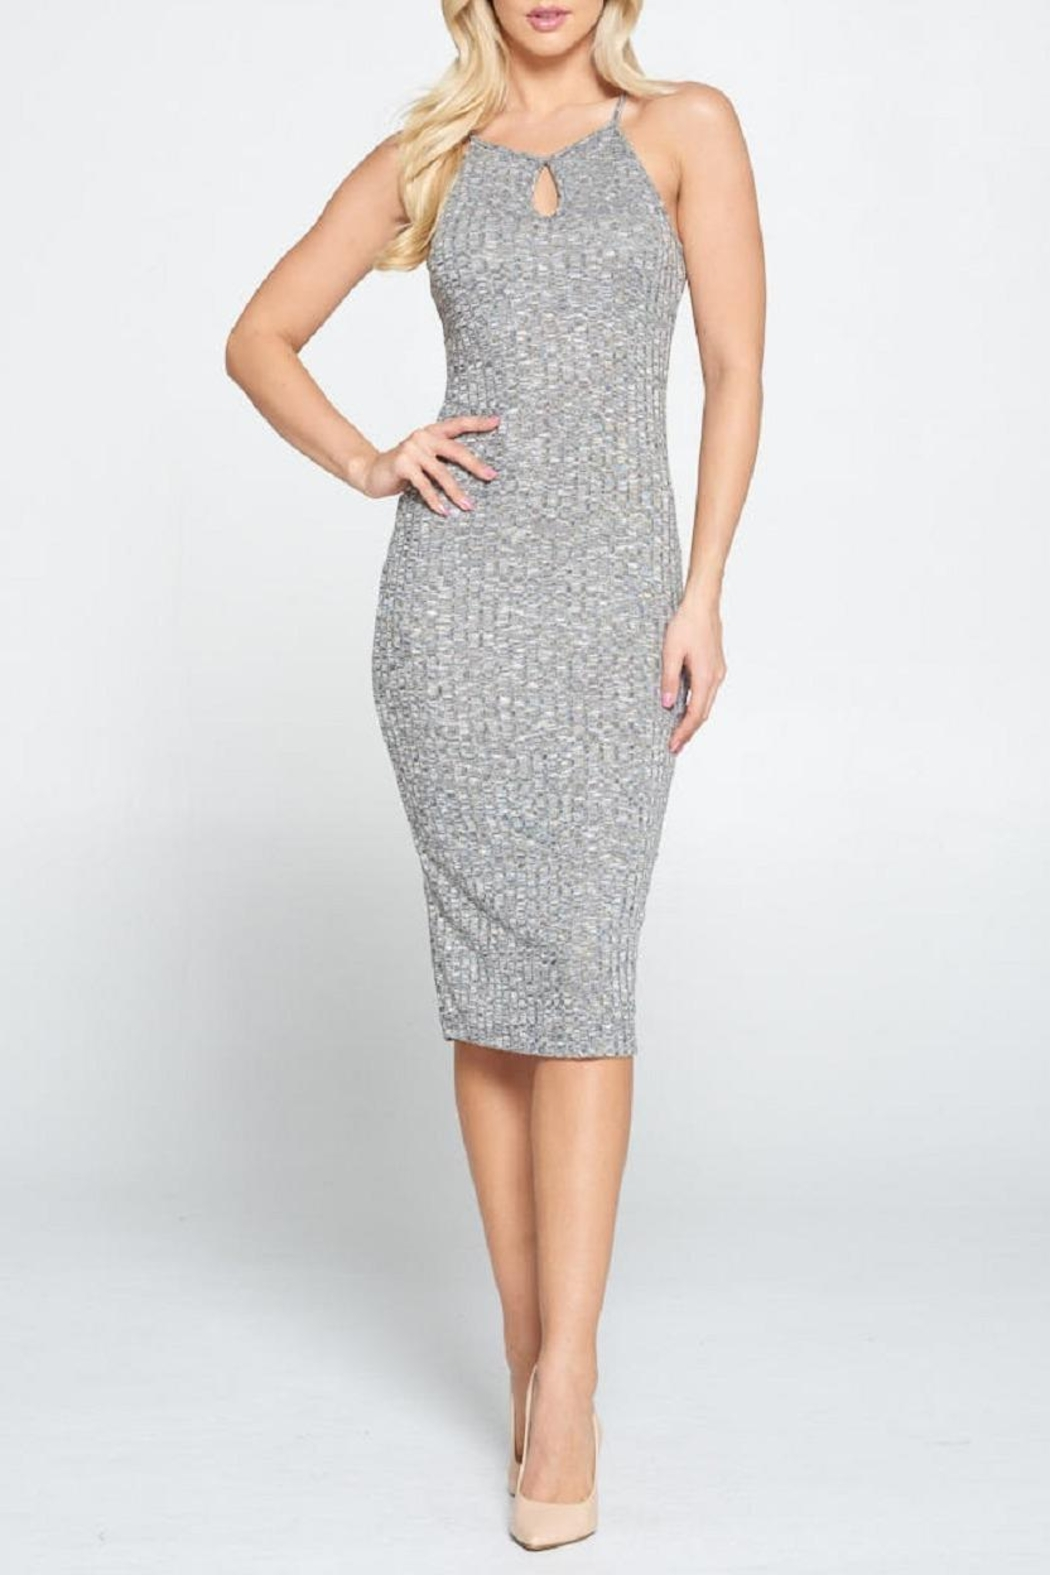 DNA Couture Ribbed Key-Hole Dress - Main Image